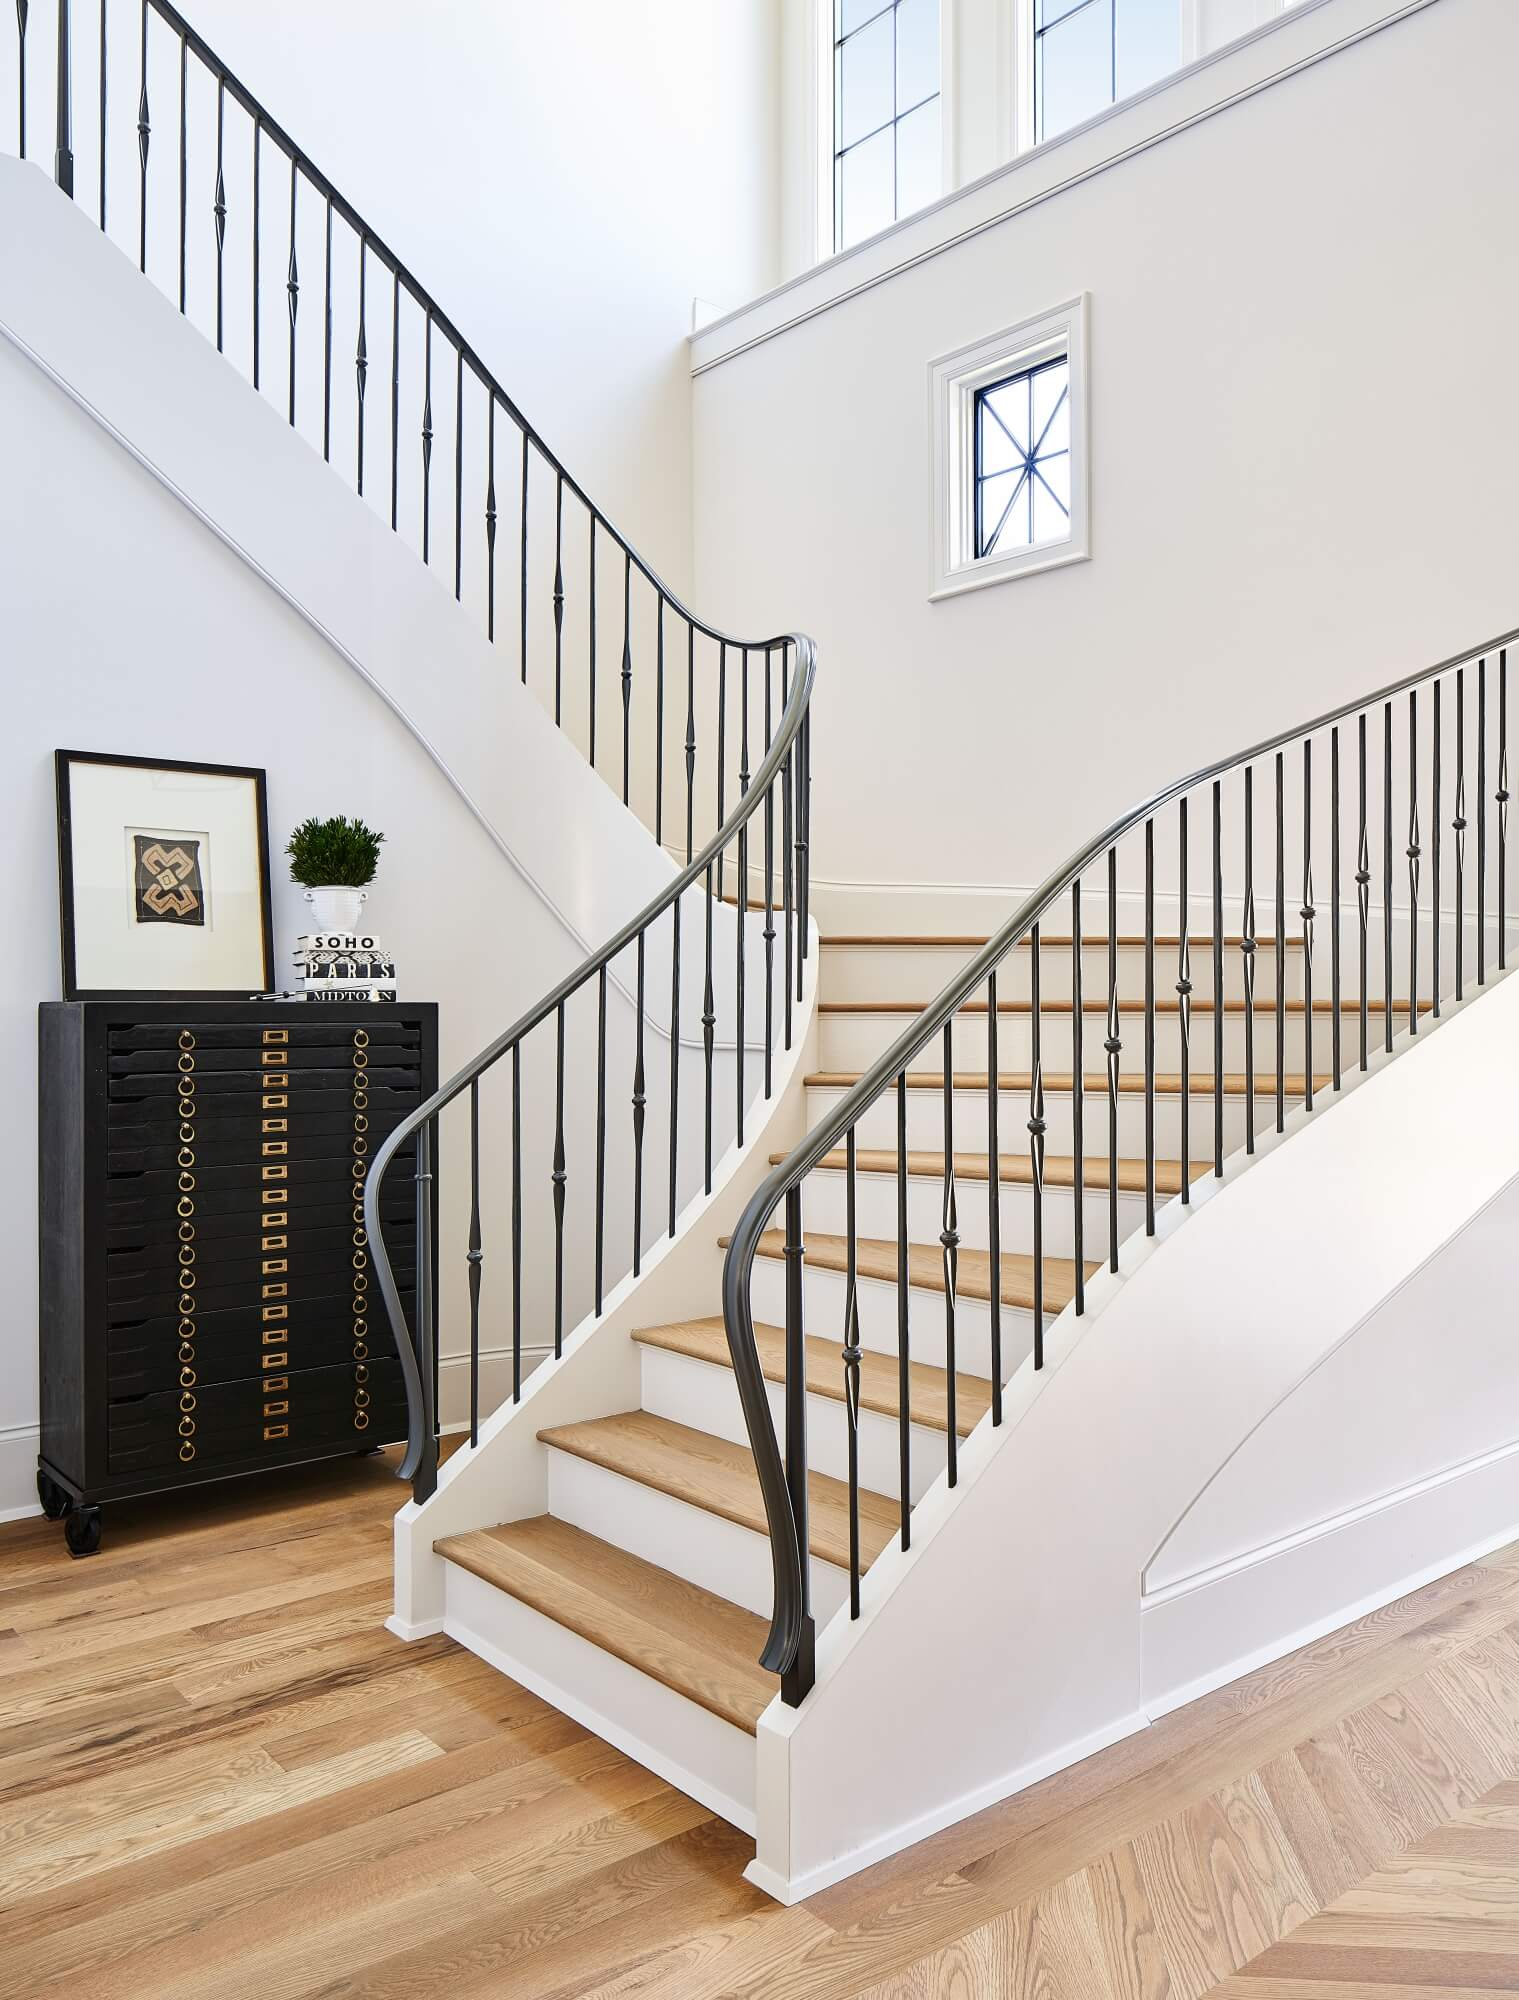 Large custom staircase in custom home with white oak flooring.